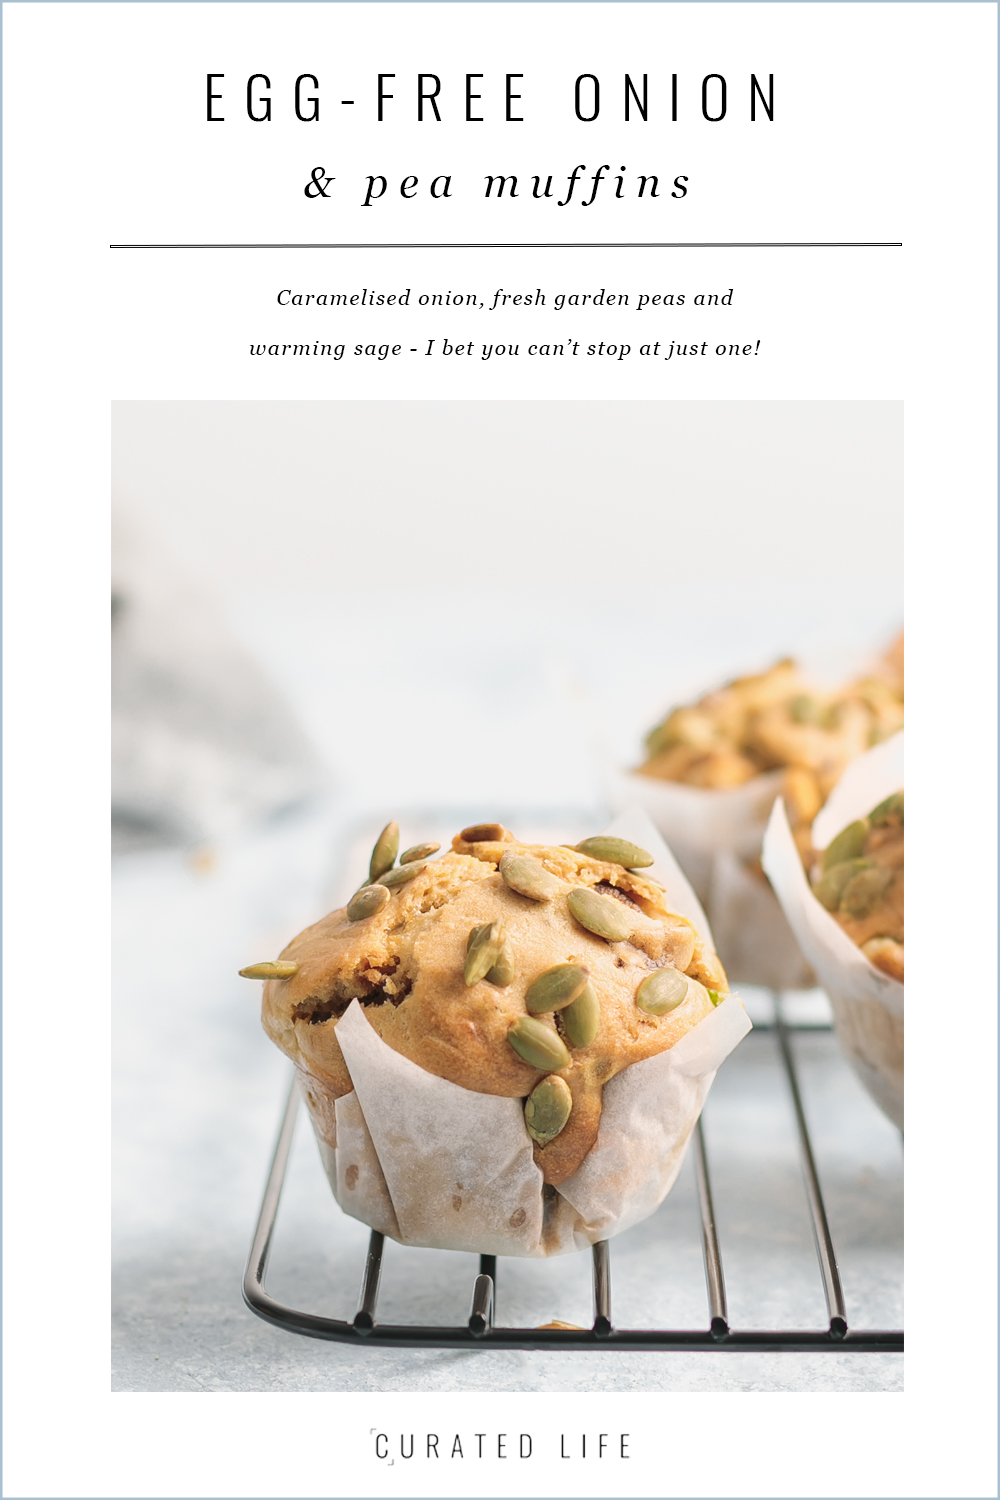 egg free savoury muffins with caramelised onion, sage and spring peas | www.curatedlifestudio.com